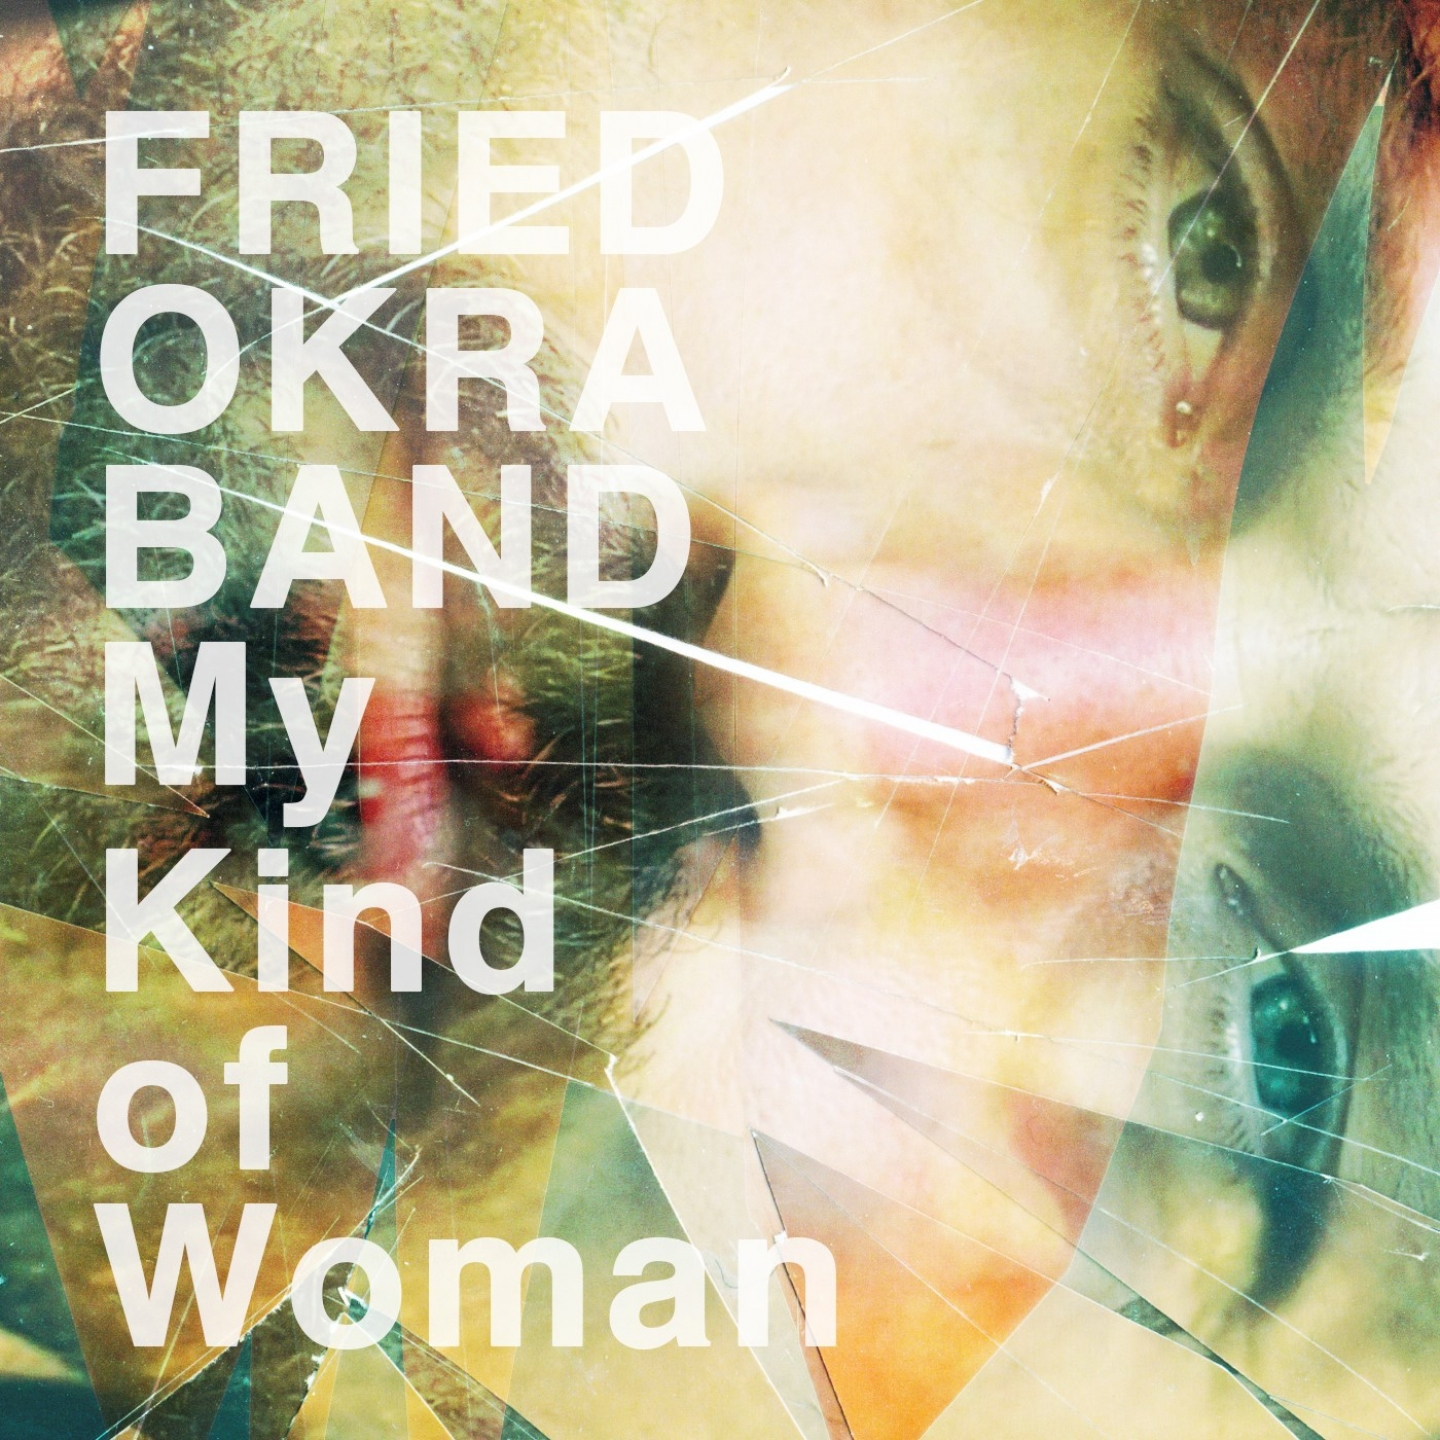 The Fried Okra Band – 'My Kind of Woman' (Single)